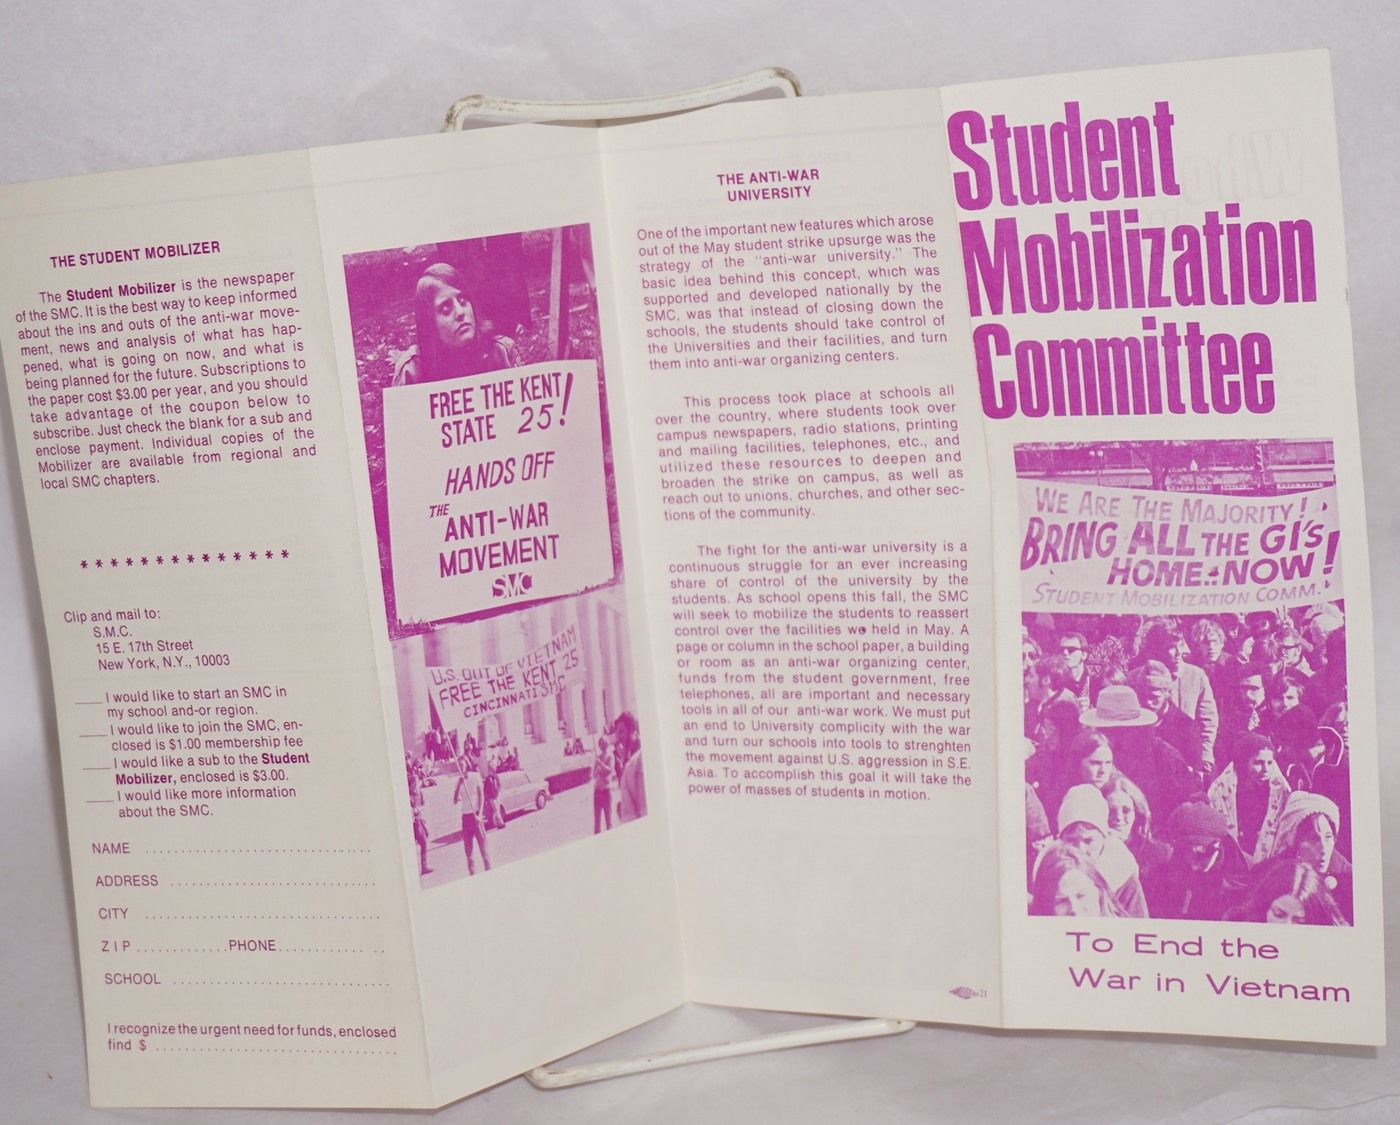 Student Mobilization Committee To End The War In Vietnam